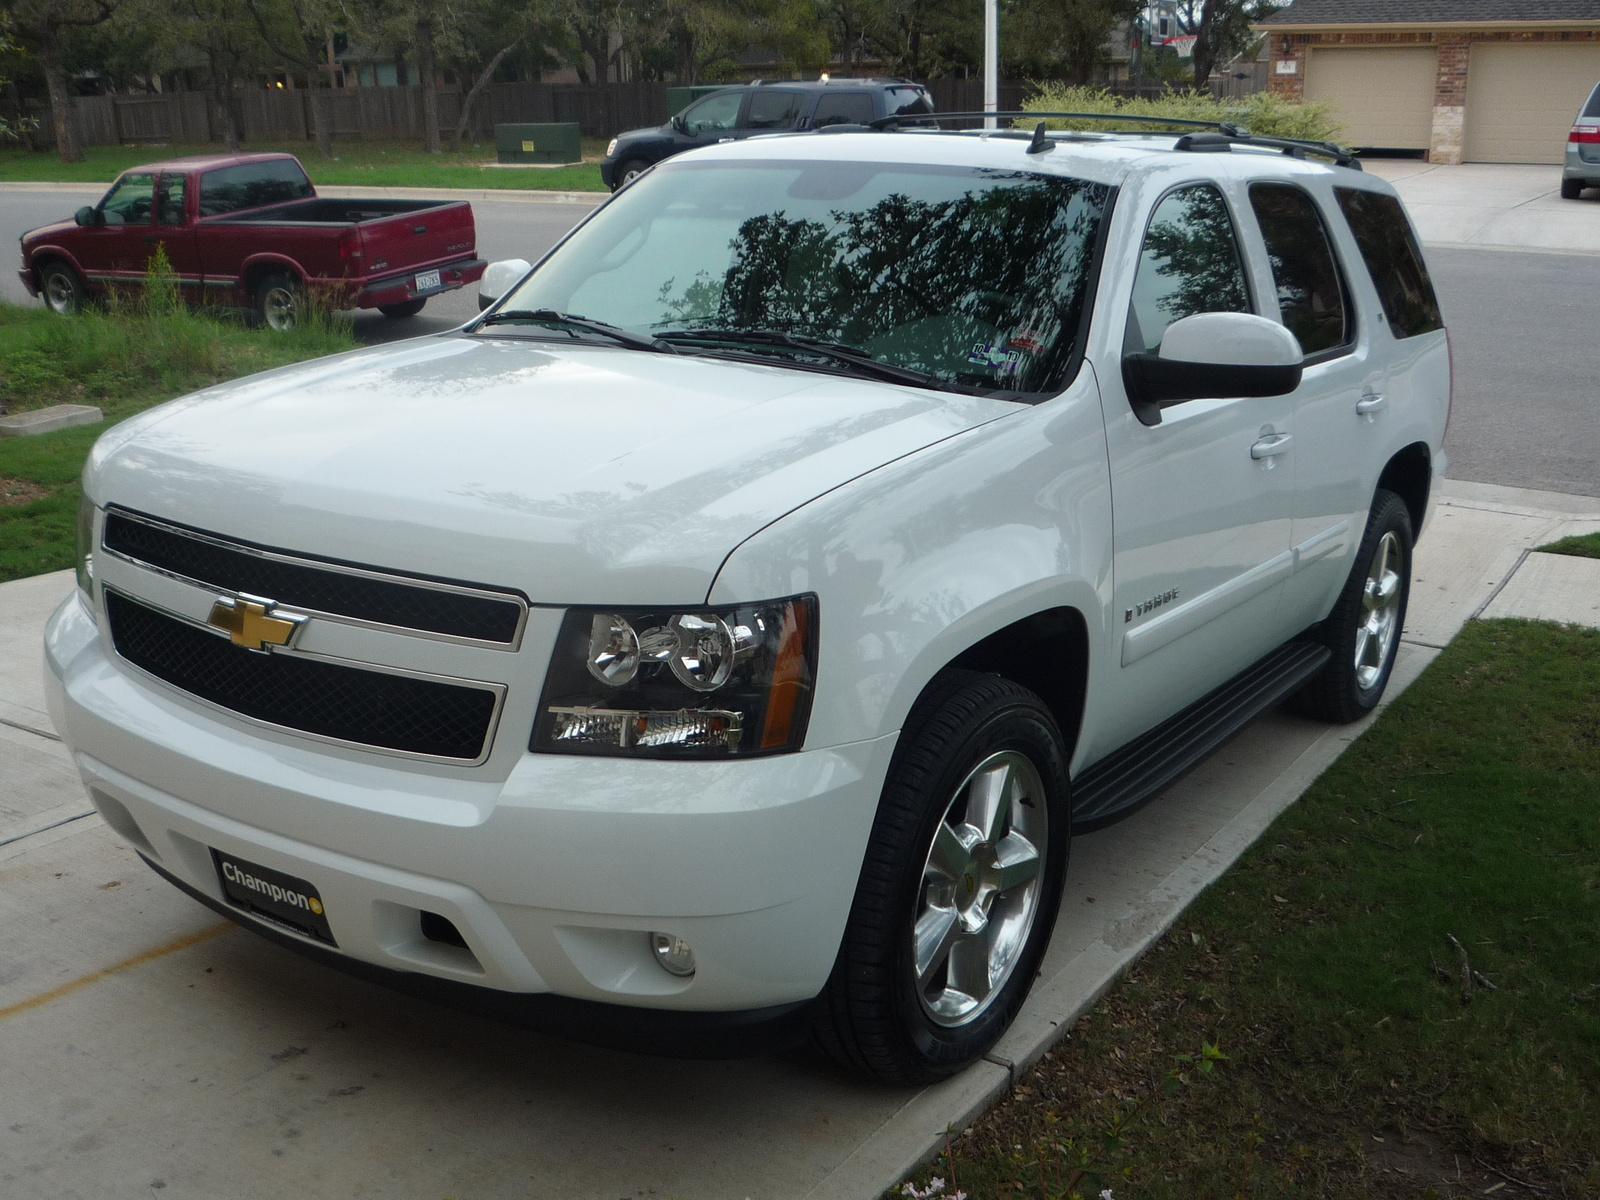 2009 chevrolet tahoe pictures cargurus. Black Bedroom Furniture Sets. Home Design Ideas